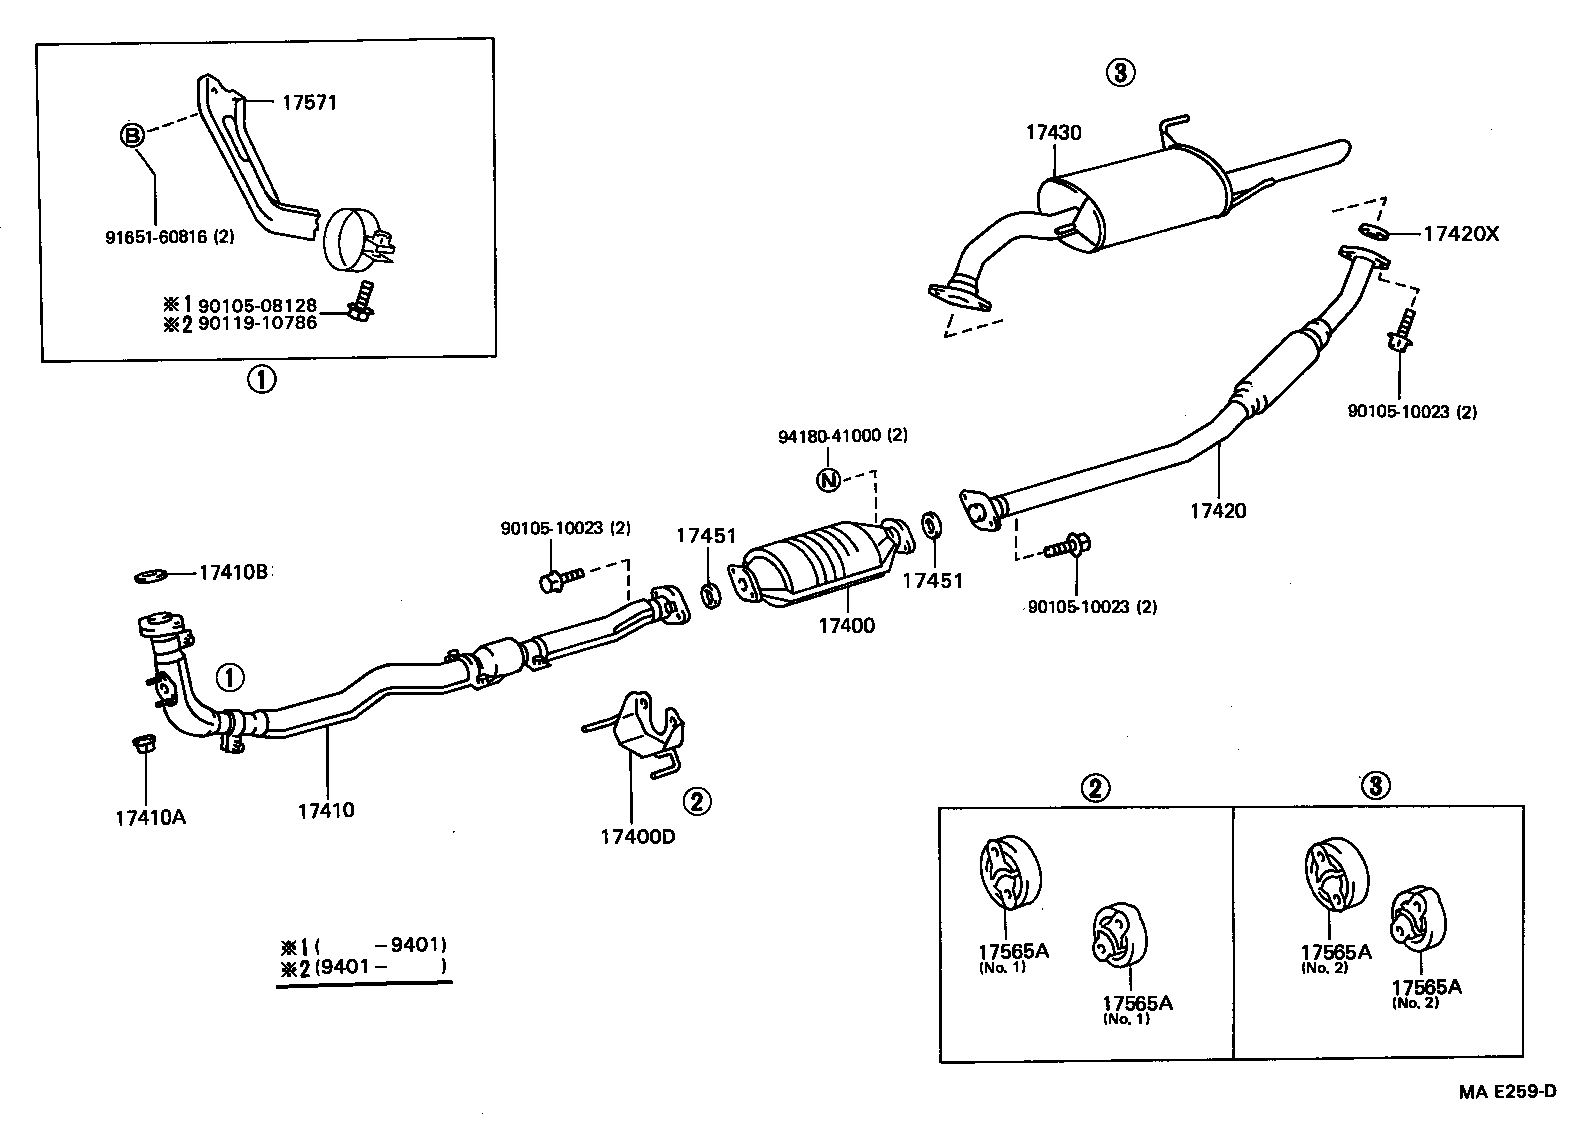 toyota tercel engine diagram wiring diagram toyota corolla 1994 wirdig 91 toyota tercel engine parts diagram wiring diagram